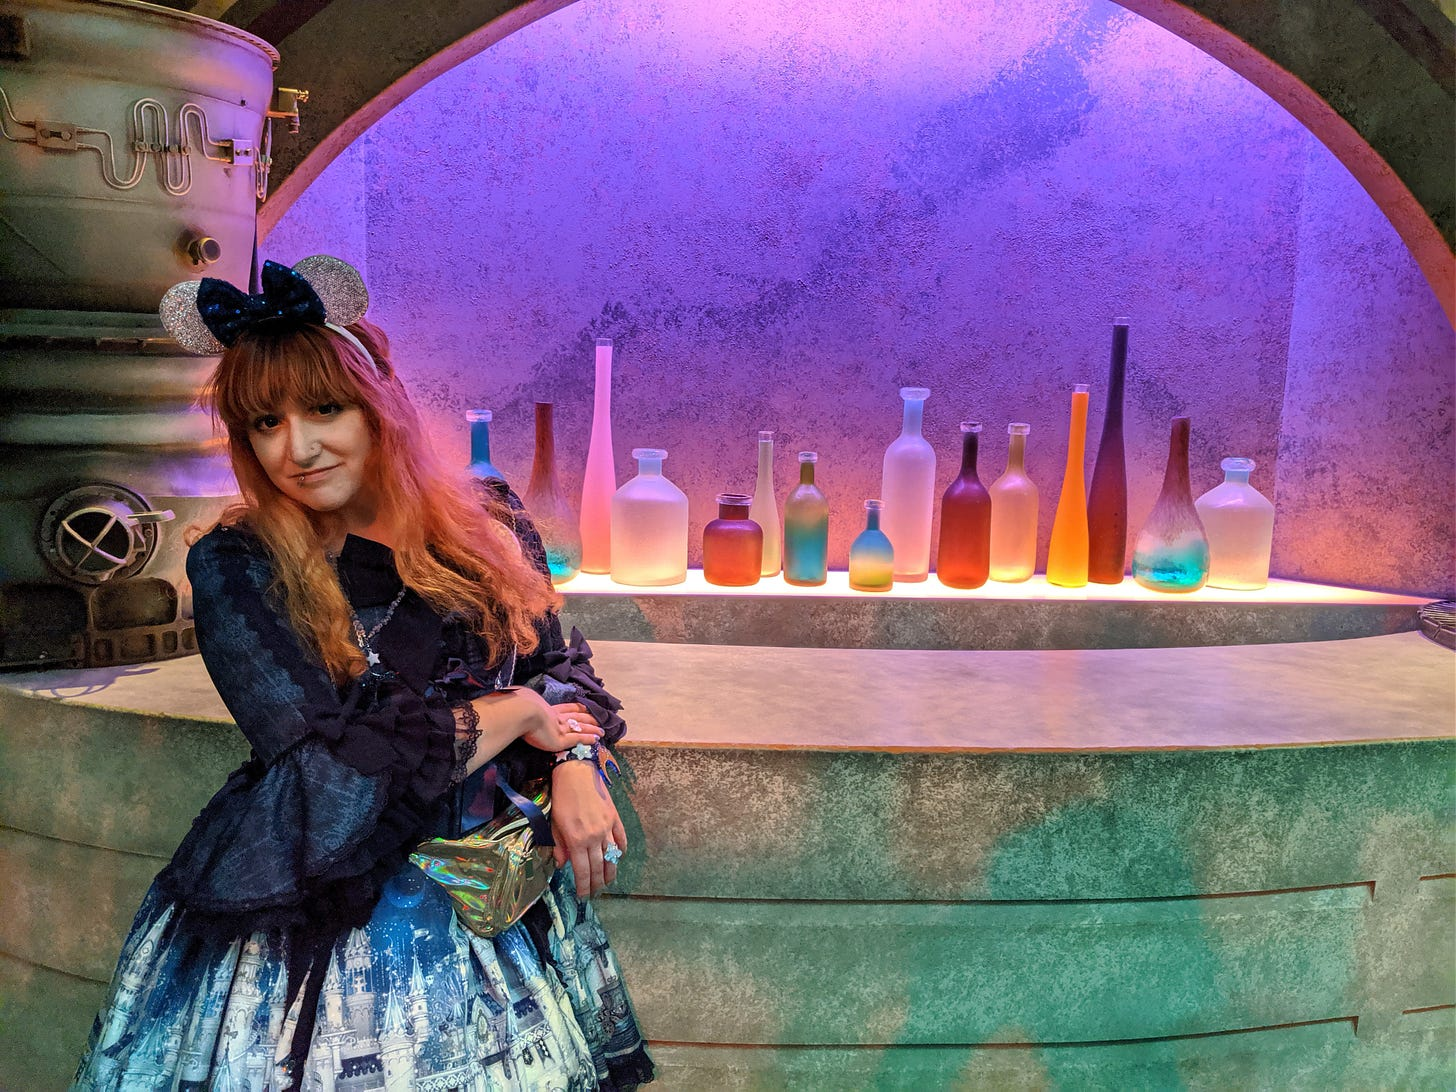 Photo taken in 2019 at Disneyland. Nif (a white femme with red/orange hair) is wearing glittery silver mouse ears with a navy sequined bow. She is wearing Angelic Pretty's Castle Mirage princess sleeve OP in navy, with a metallic gold fanny pack, and an assortment of AP acrylic jewelry. She is standing in front of a Star Wars bar display, with brightly-colored bottles behind the bar and industrial-styled tank on the bar top.